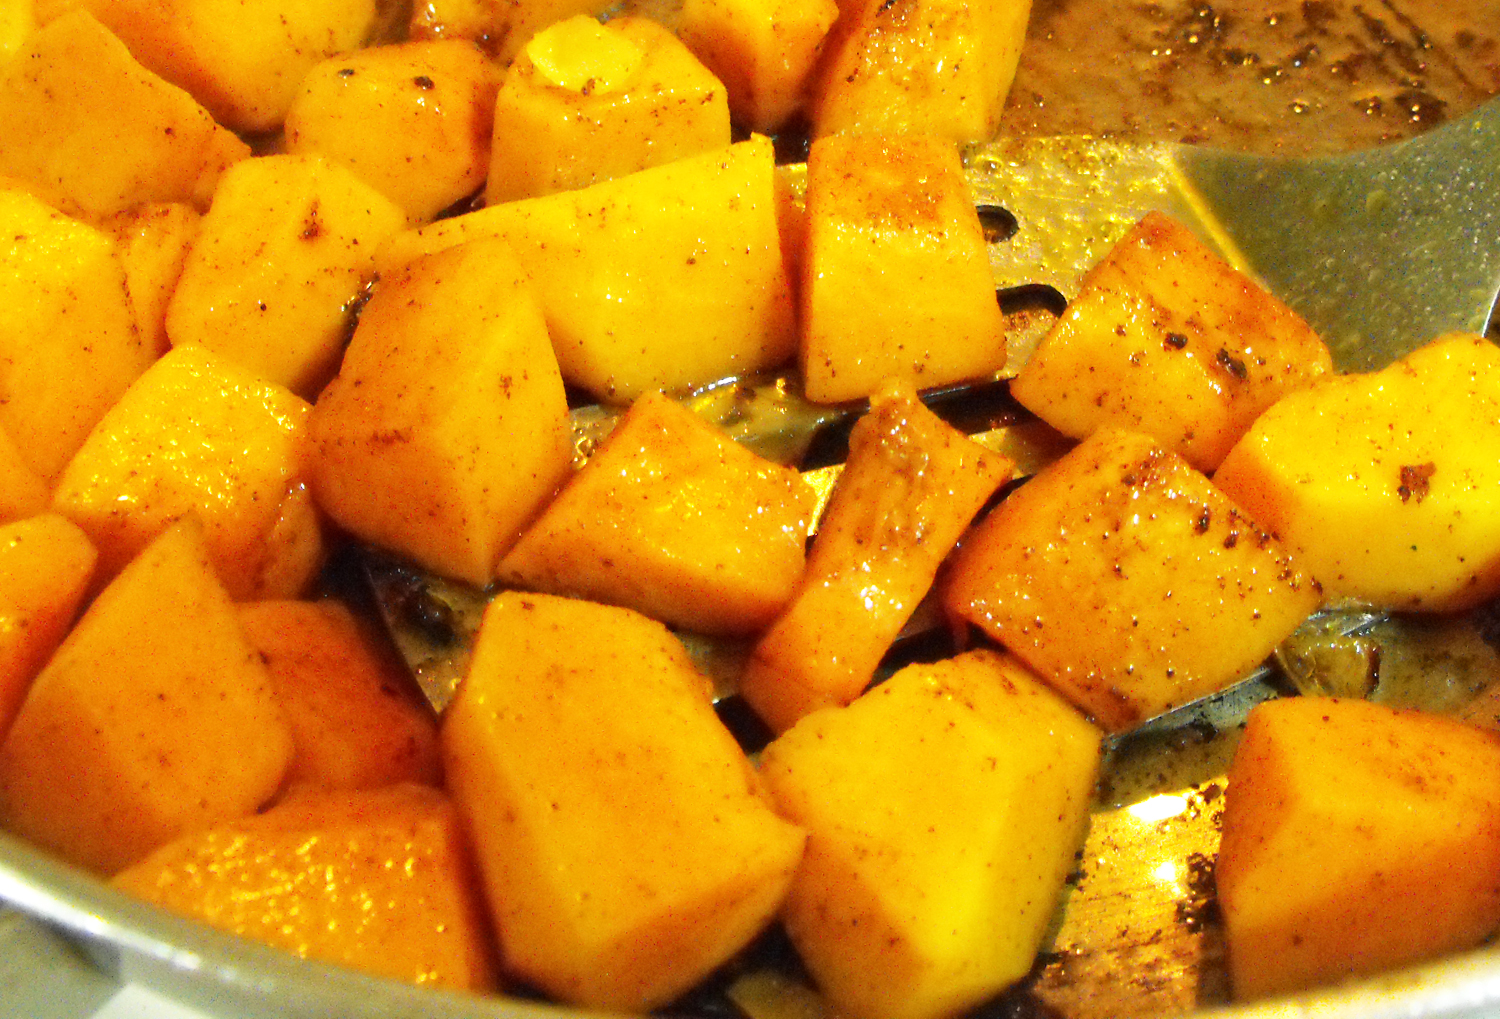 butternut squash being prepared in a skillet